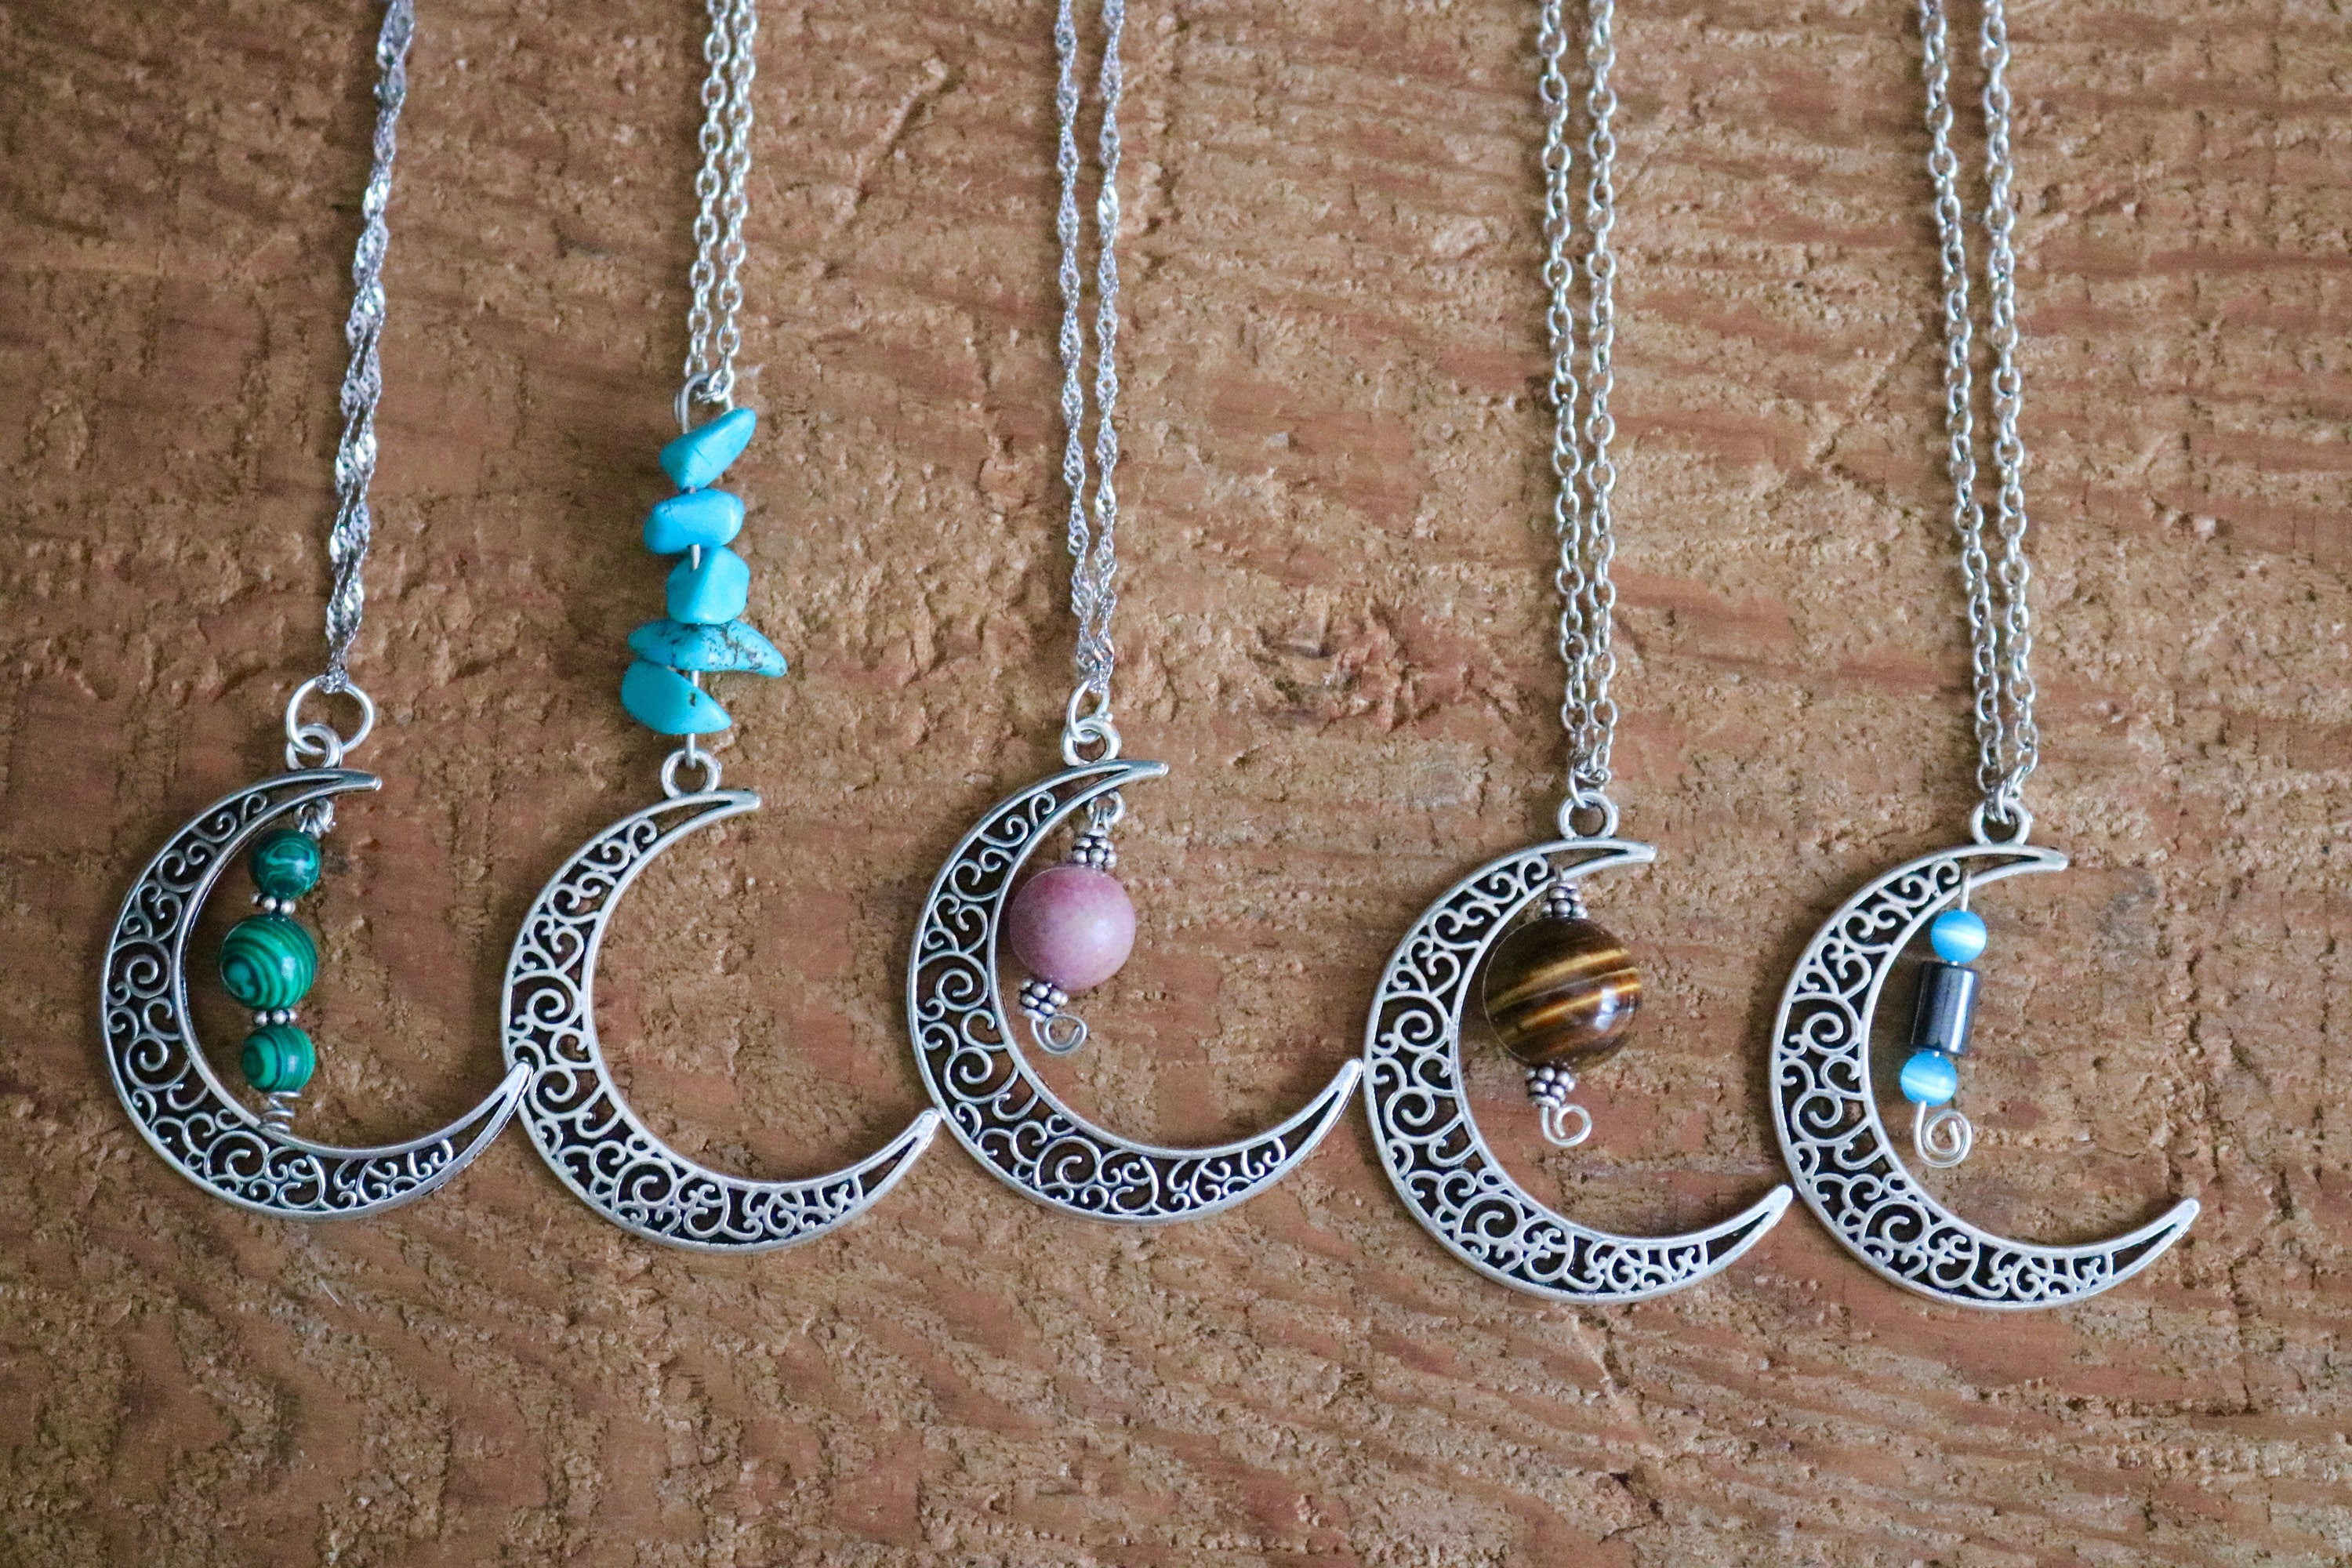 Bohemian Stone Moon God Turquoise Pendant Necklace Jewelry Accessory T